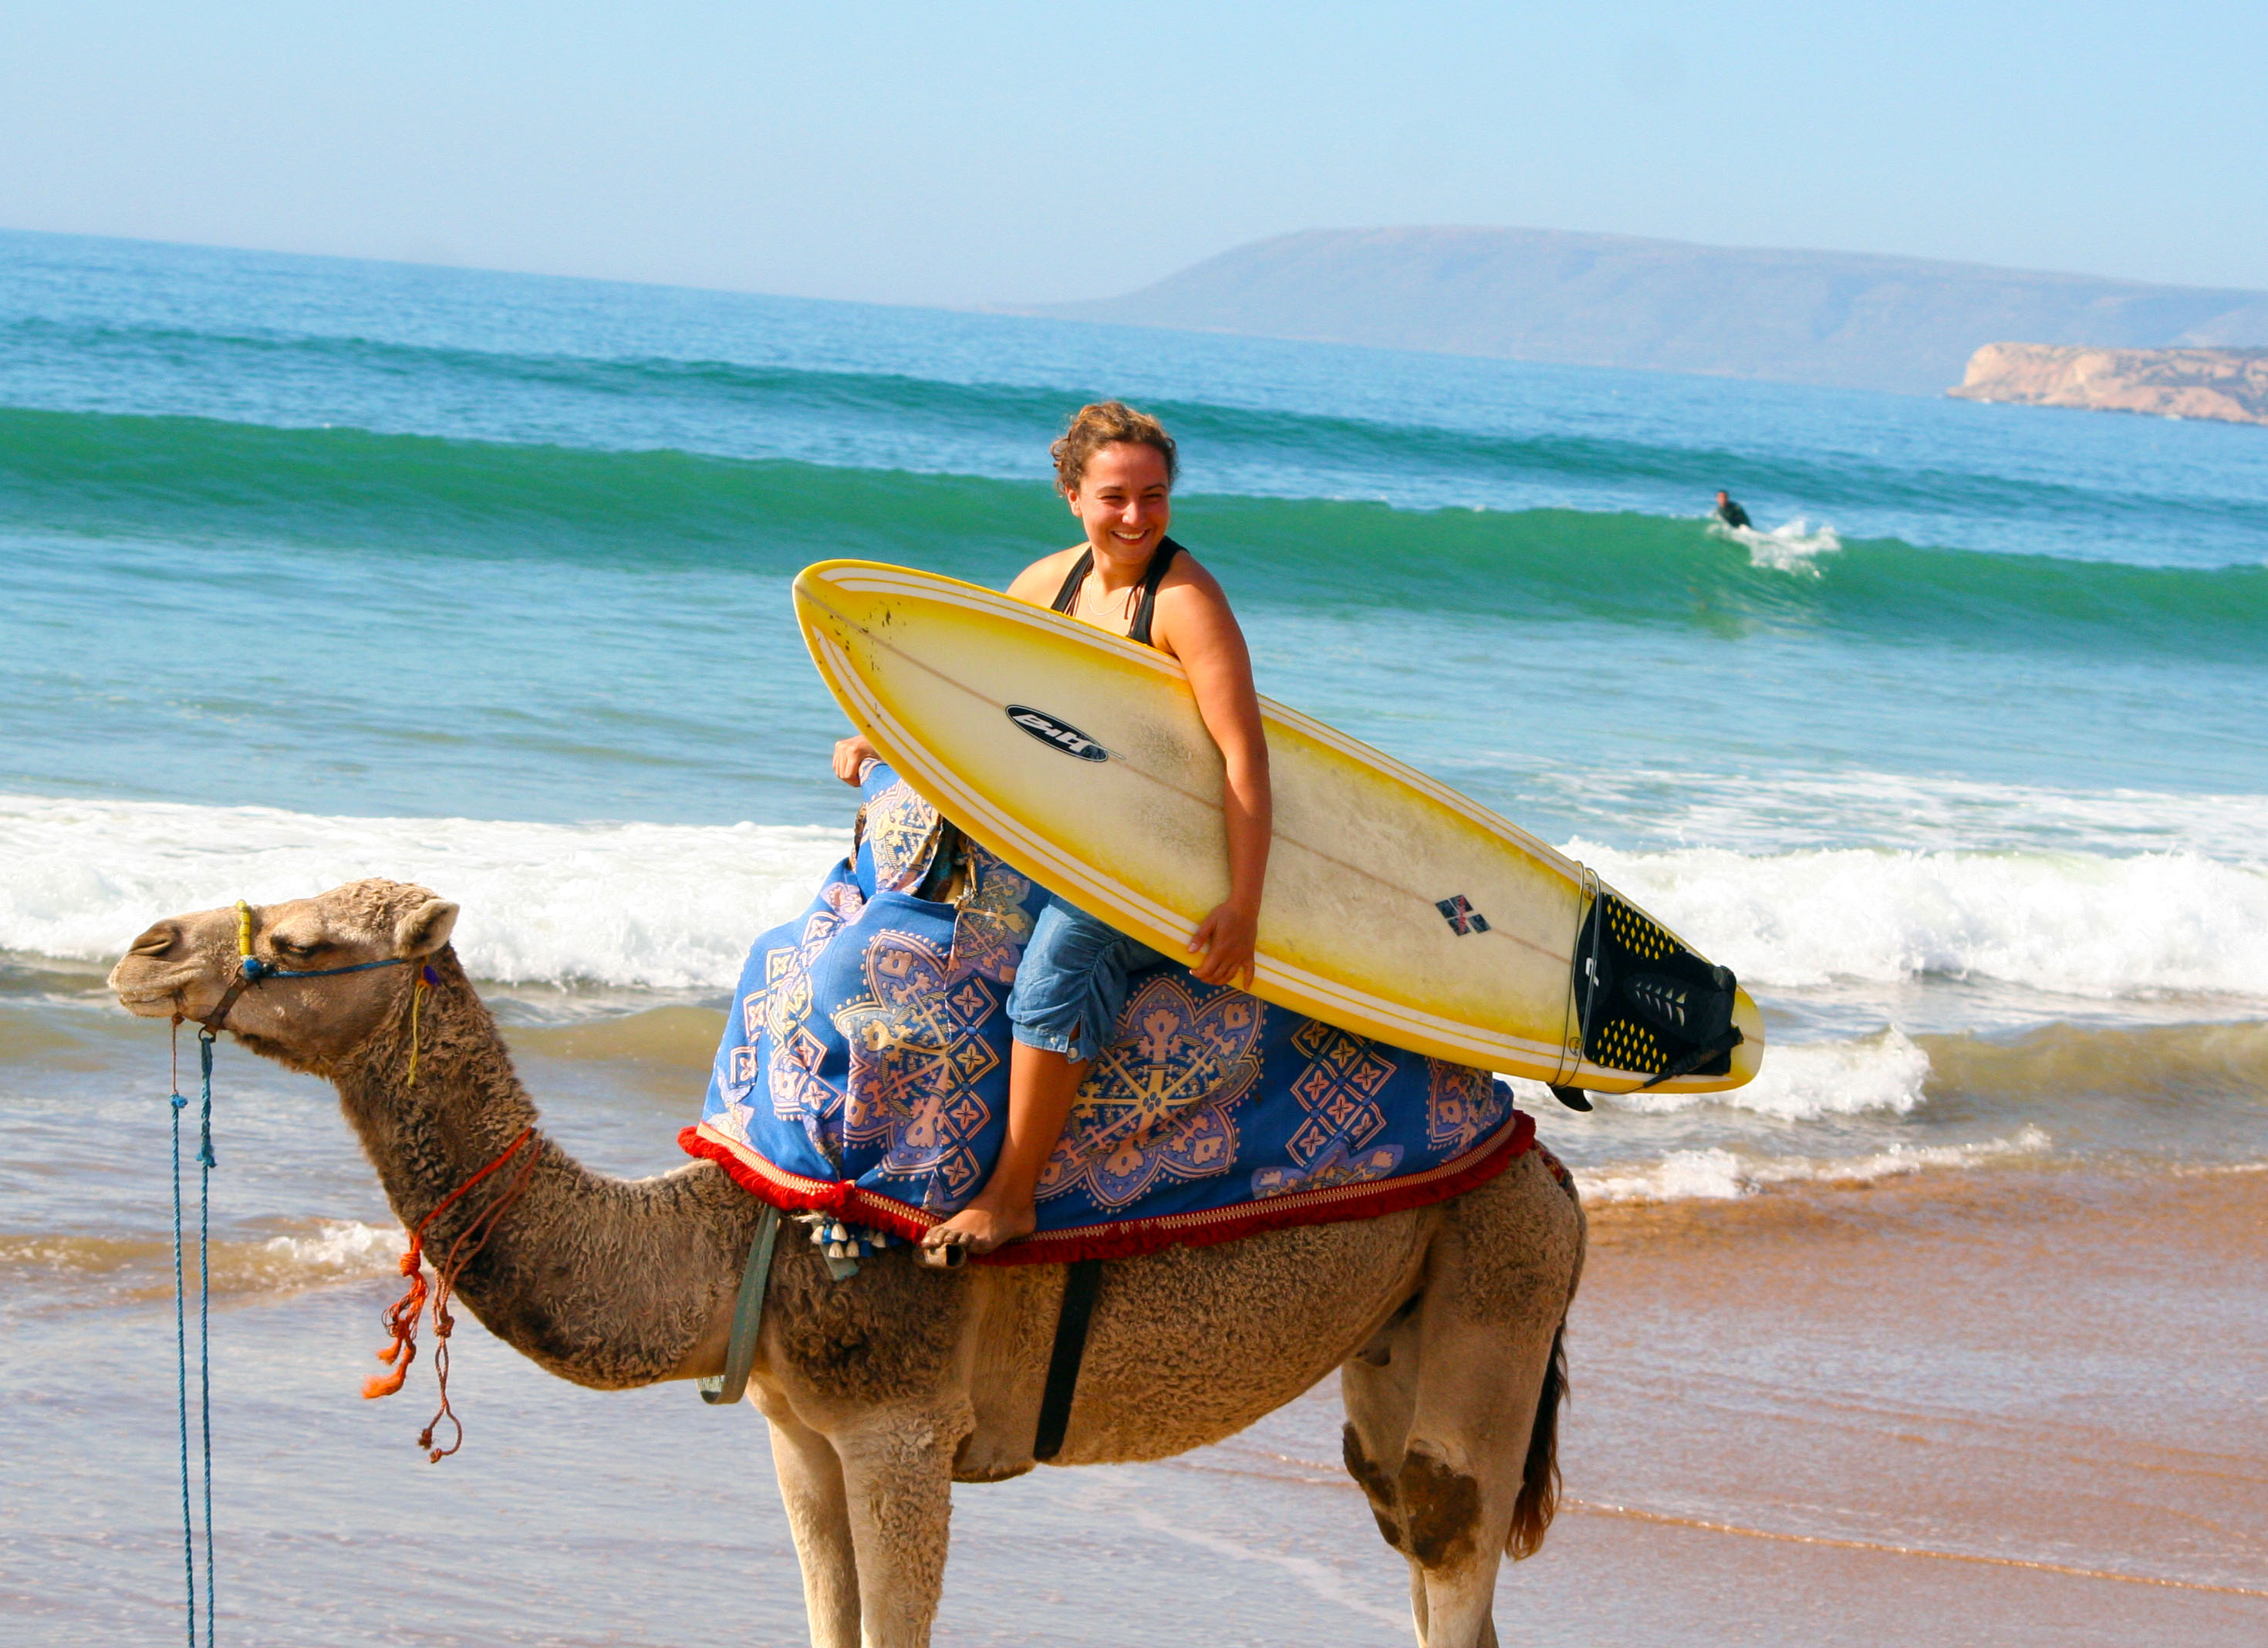 Surfs up, as is beach transportation, for Morocco winter surfing